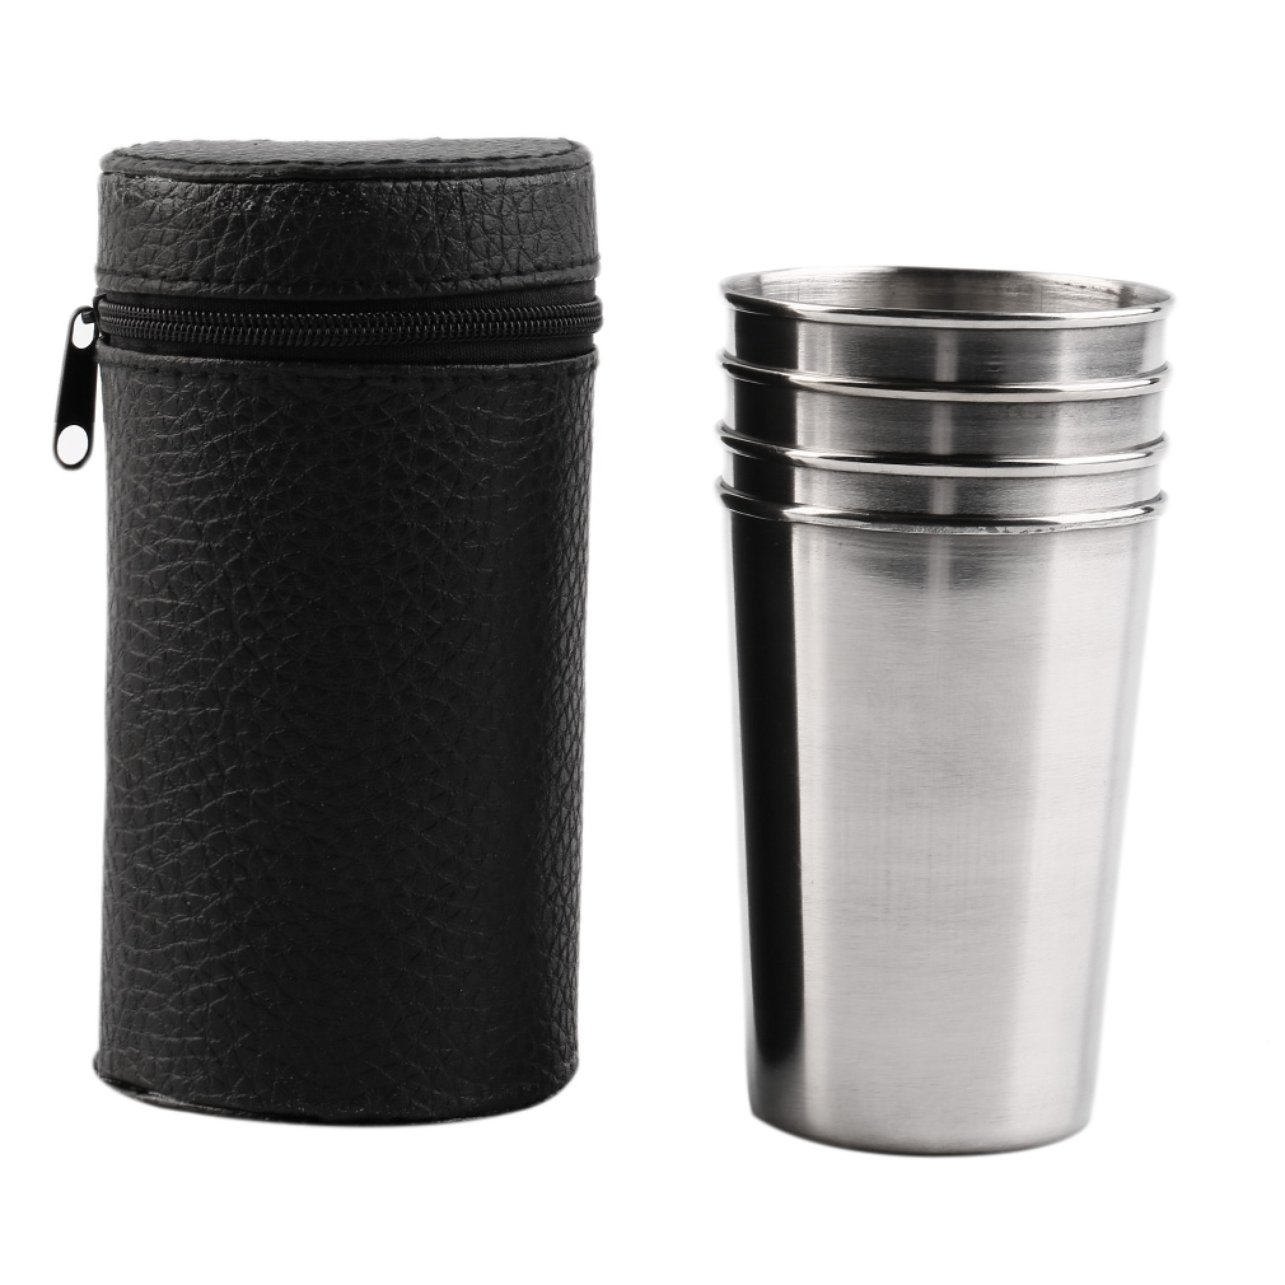 1 Set of 4 Stainless Steel Camping Cup Mug Drinking Coffee Tea With Case